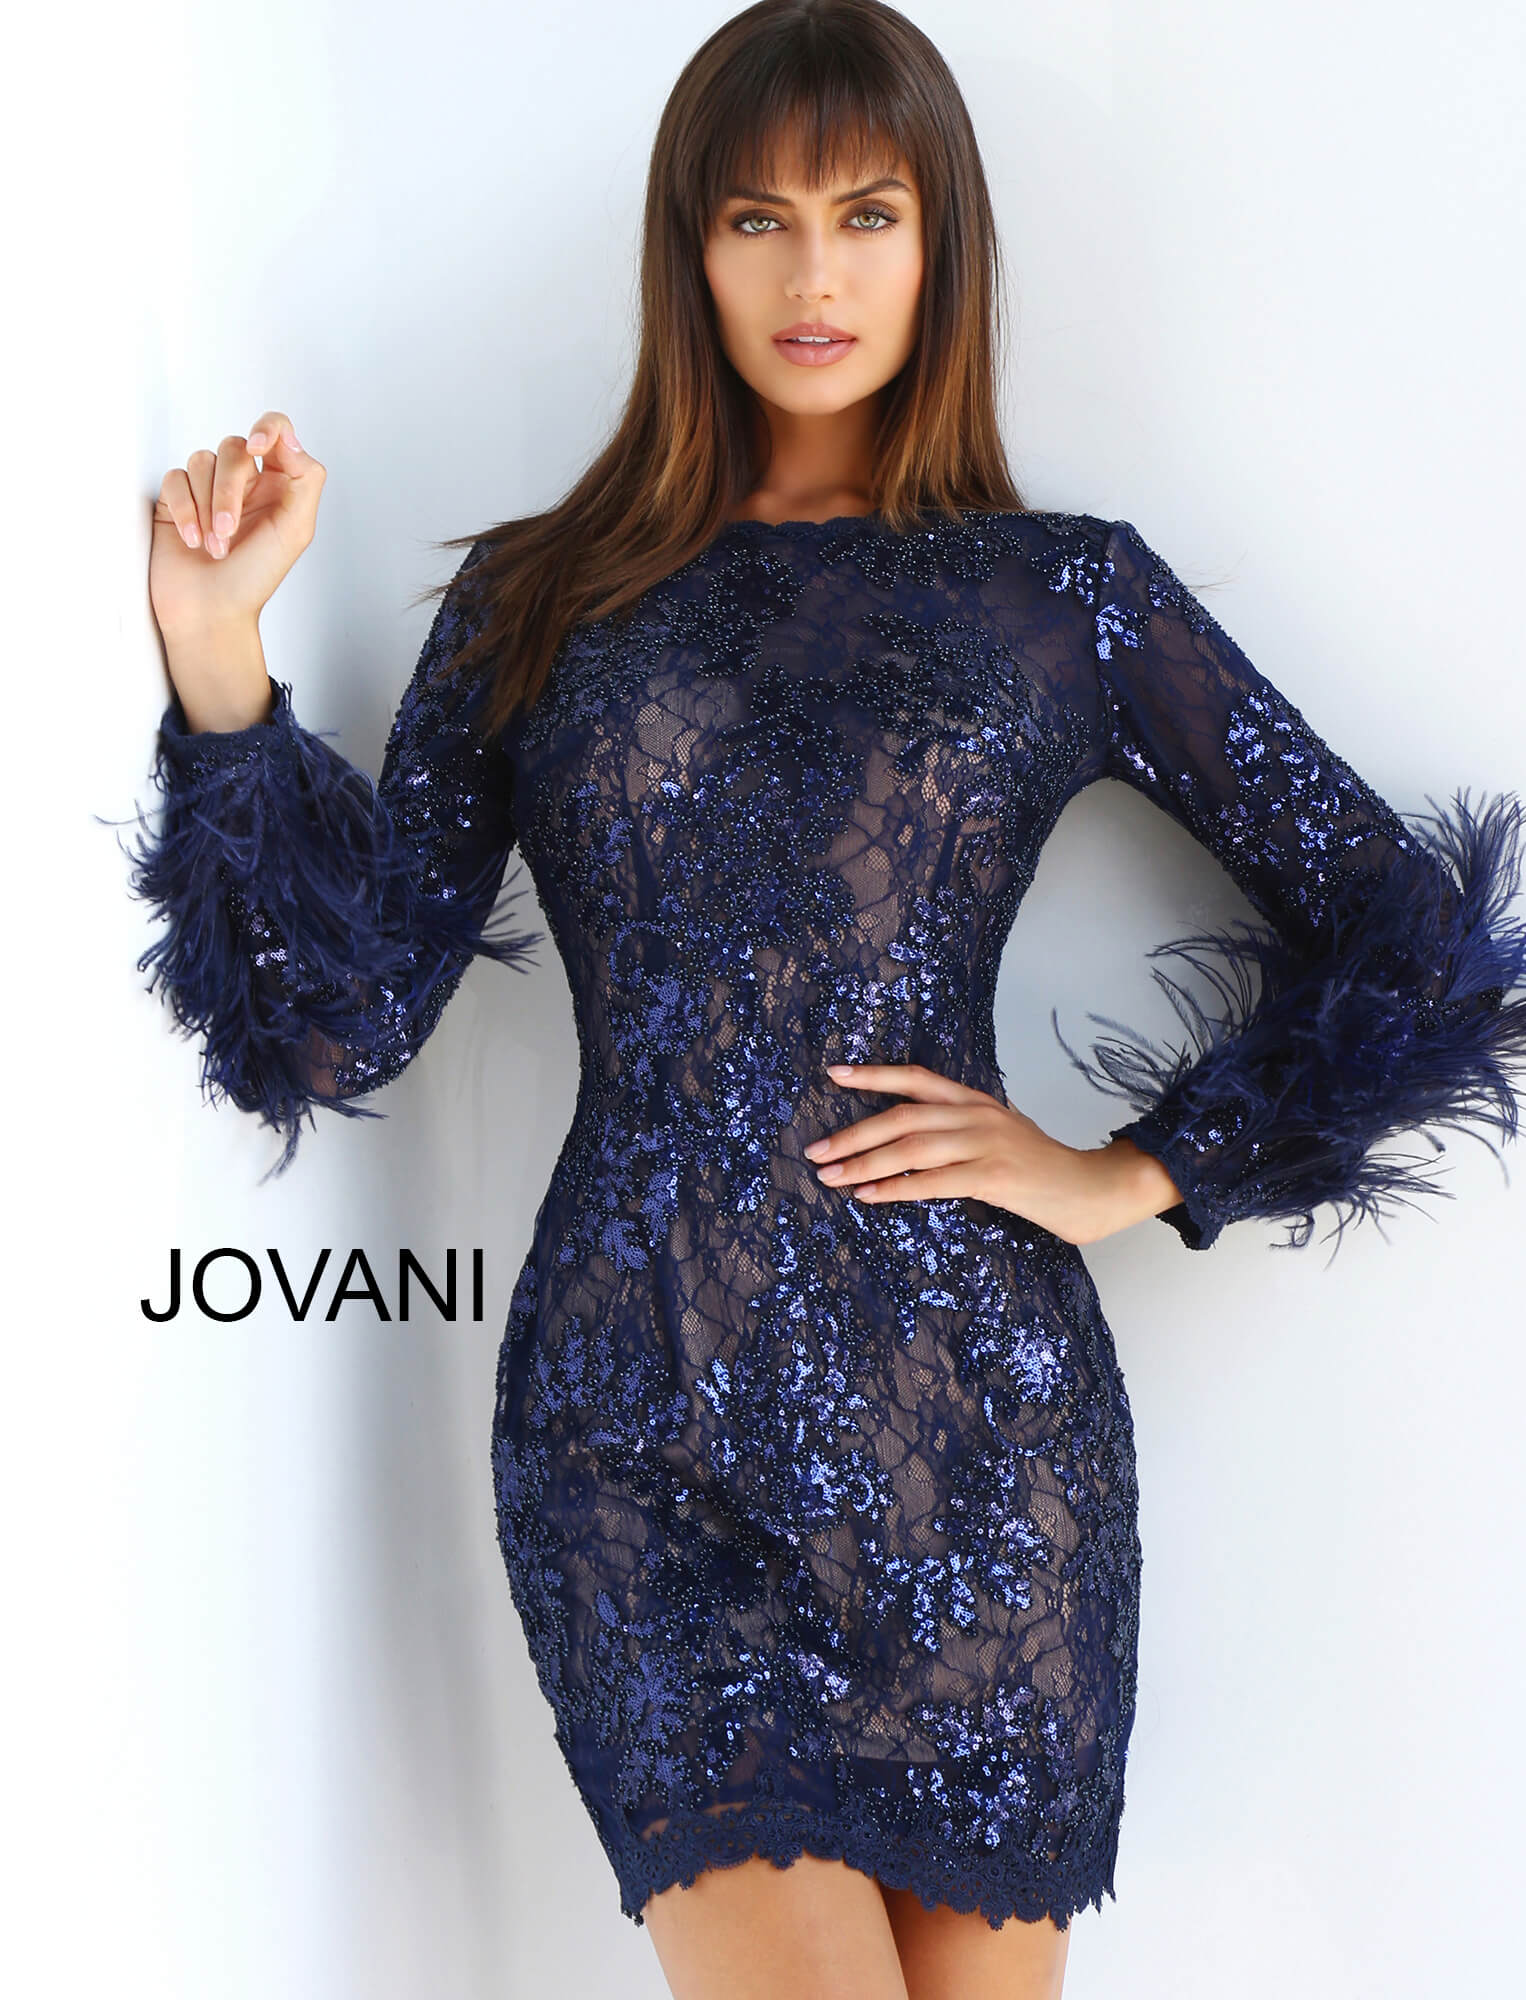 jovani Navy Long Sleeve Embellished Cocktail Dress 63351